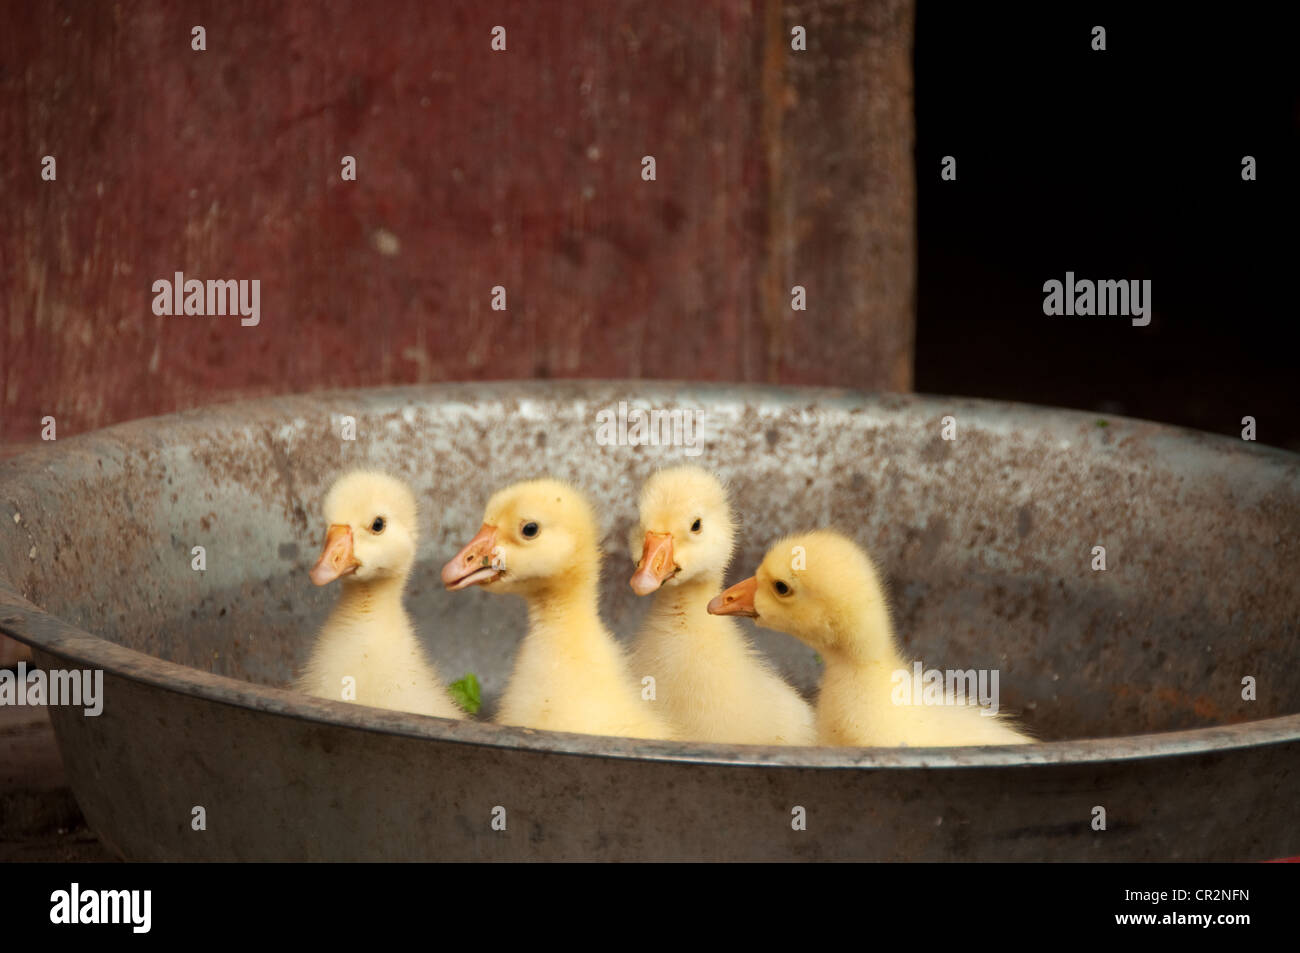 Yellow Ducklings Stock Photos & Yellow Ducklings Stock Images - Alamy